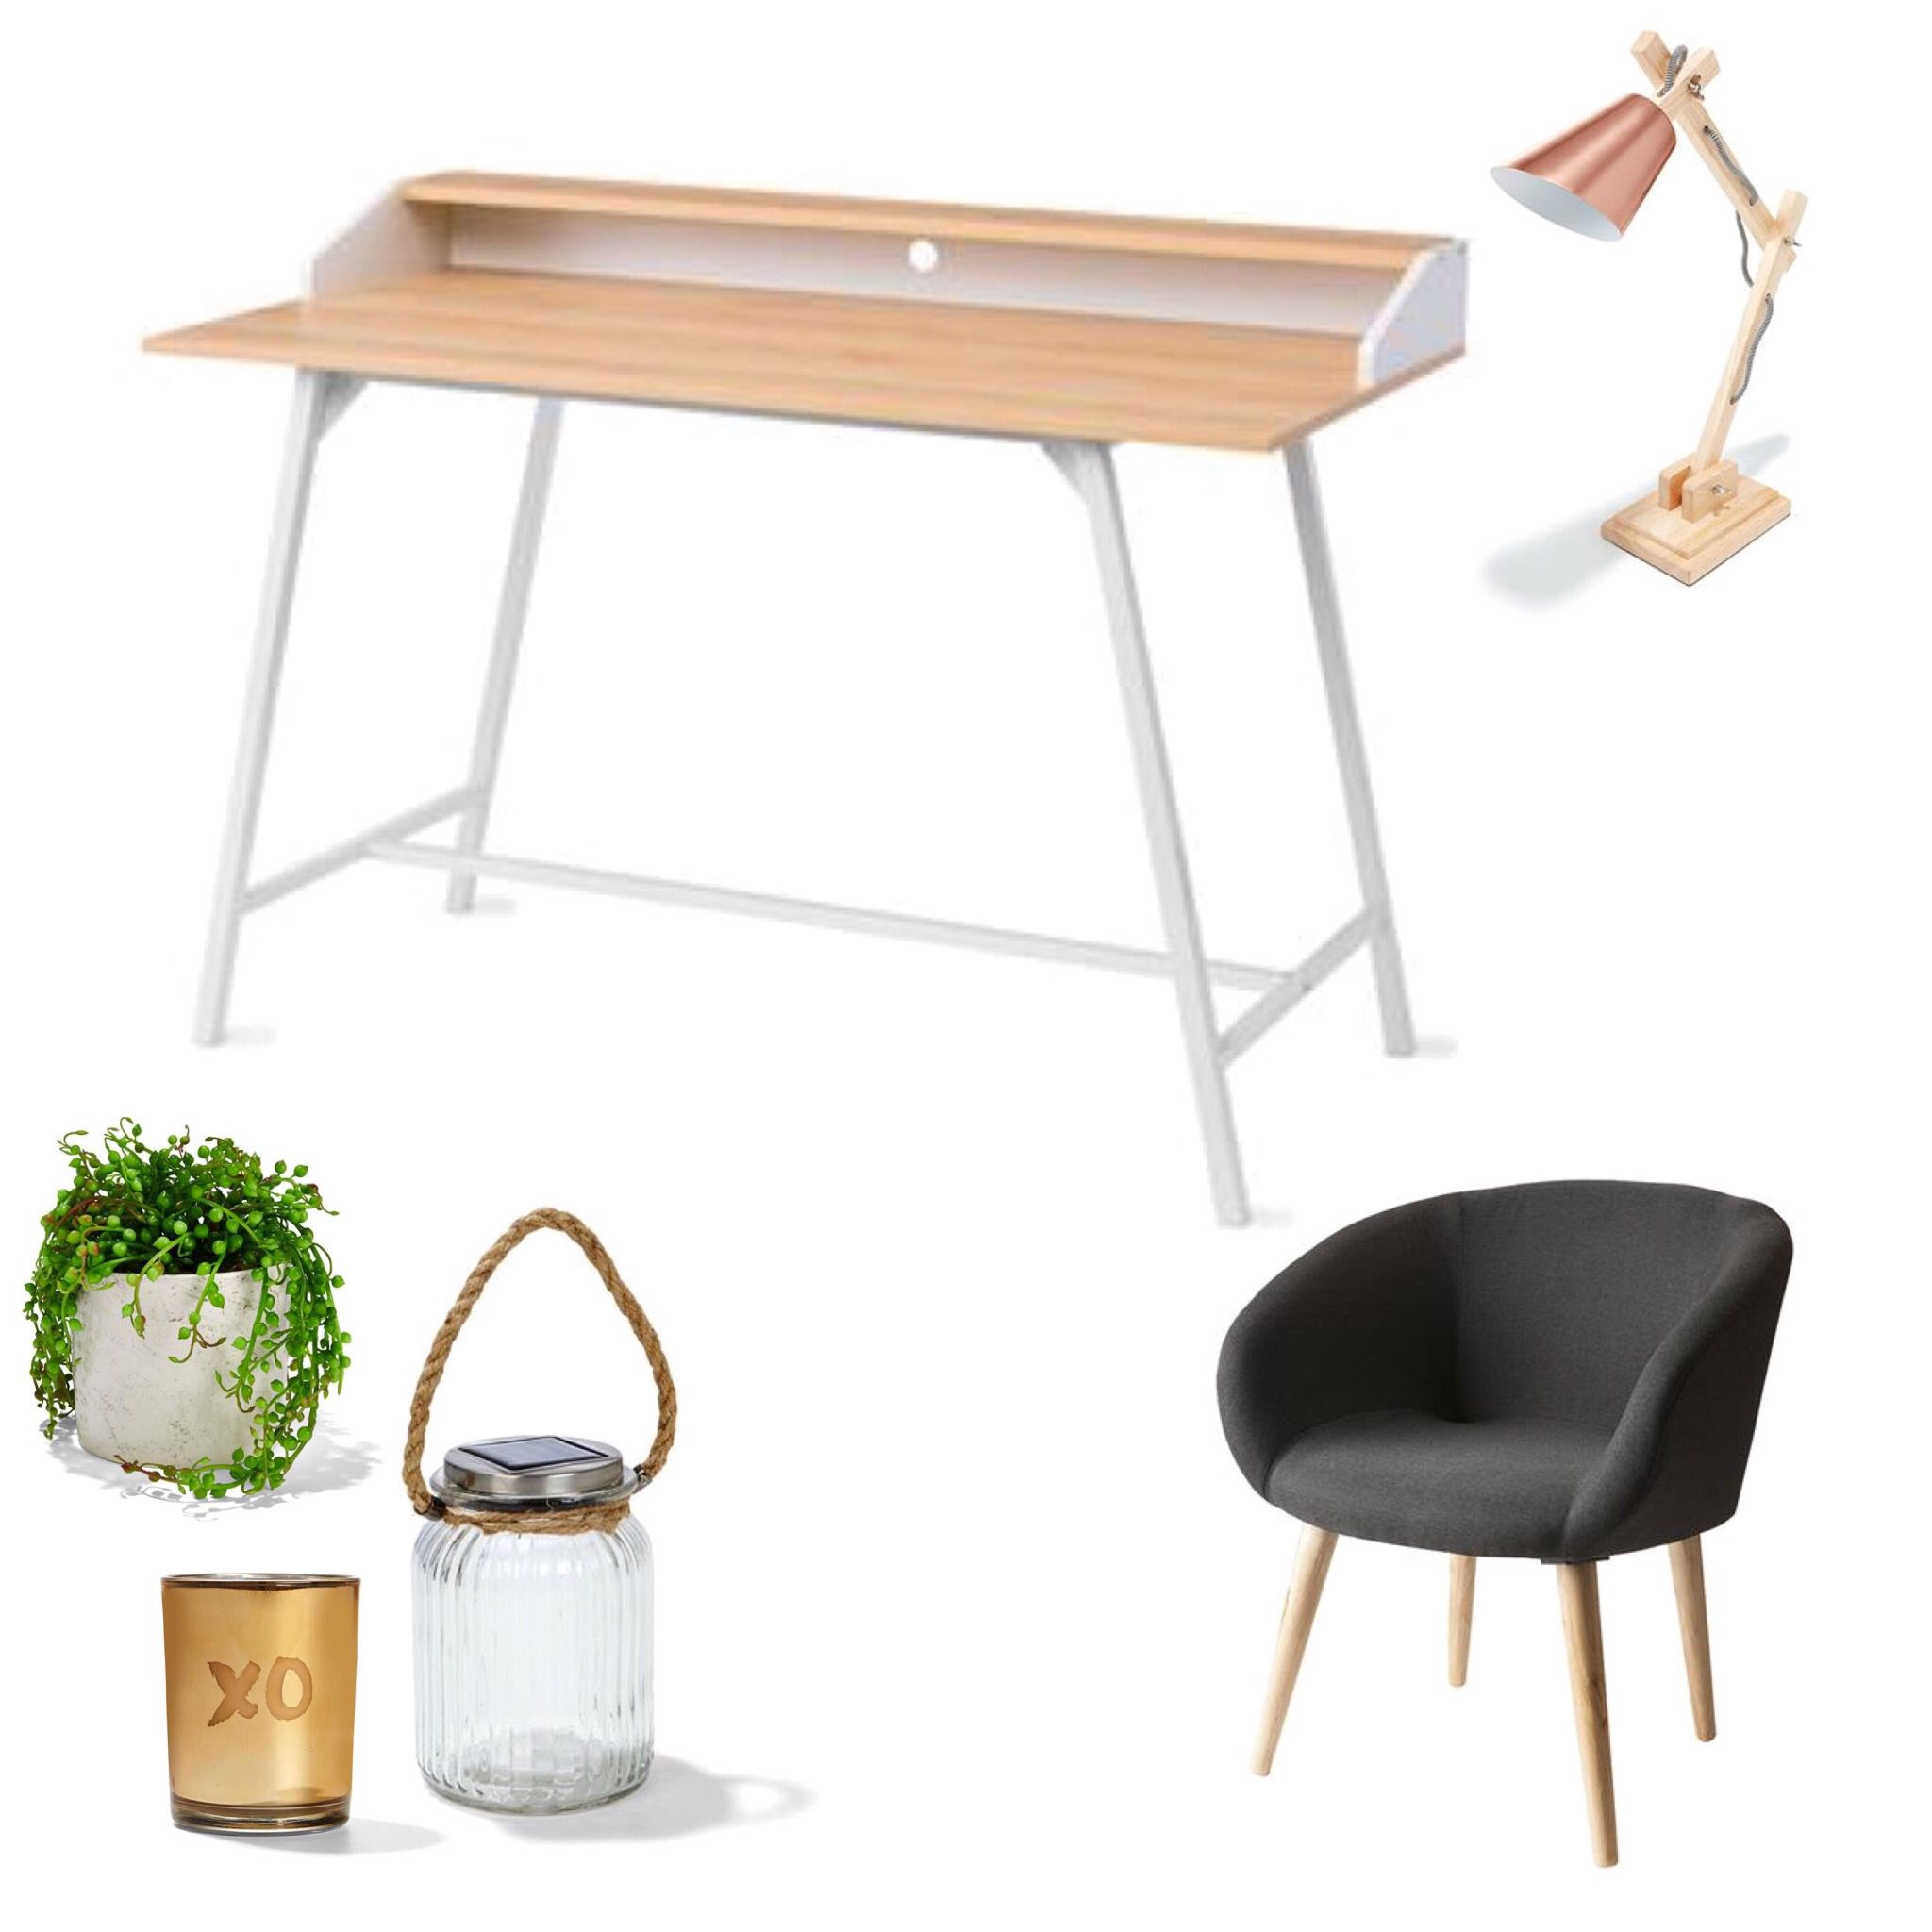 Kmart Scandinavian Desk and Occasional Chair Deco also kmart